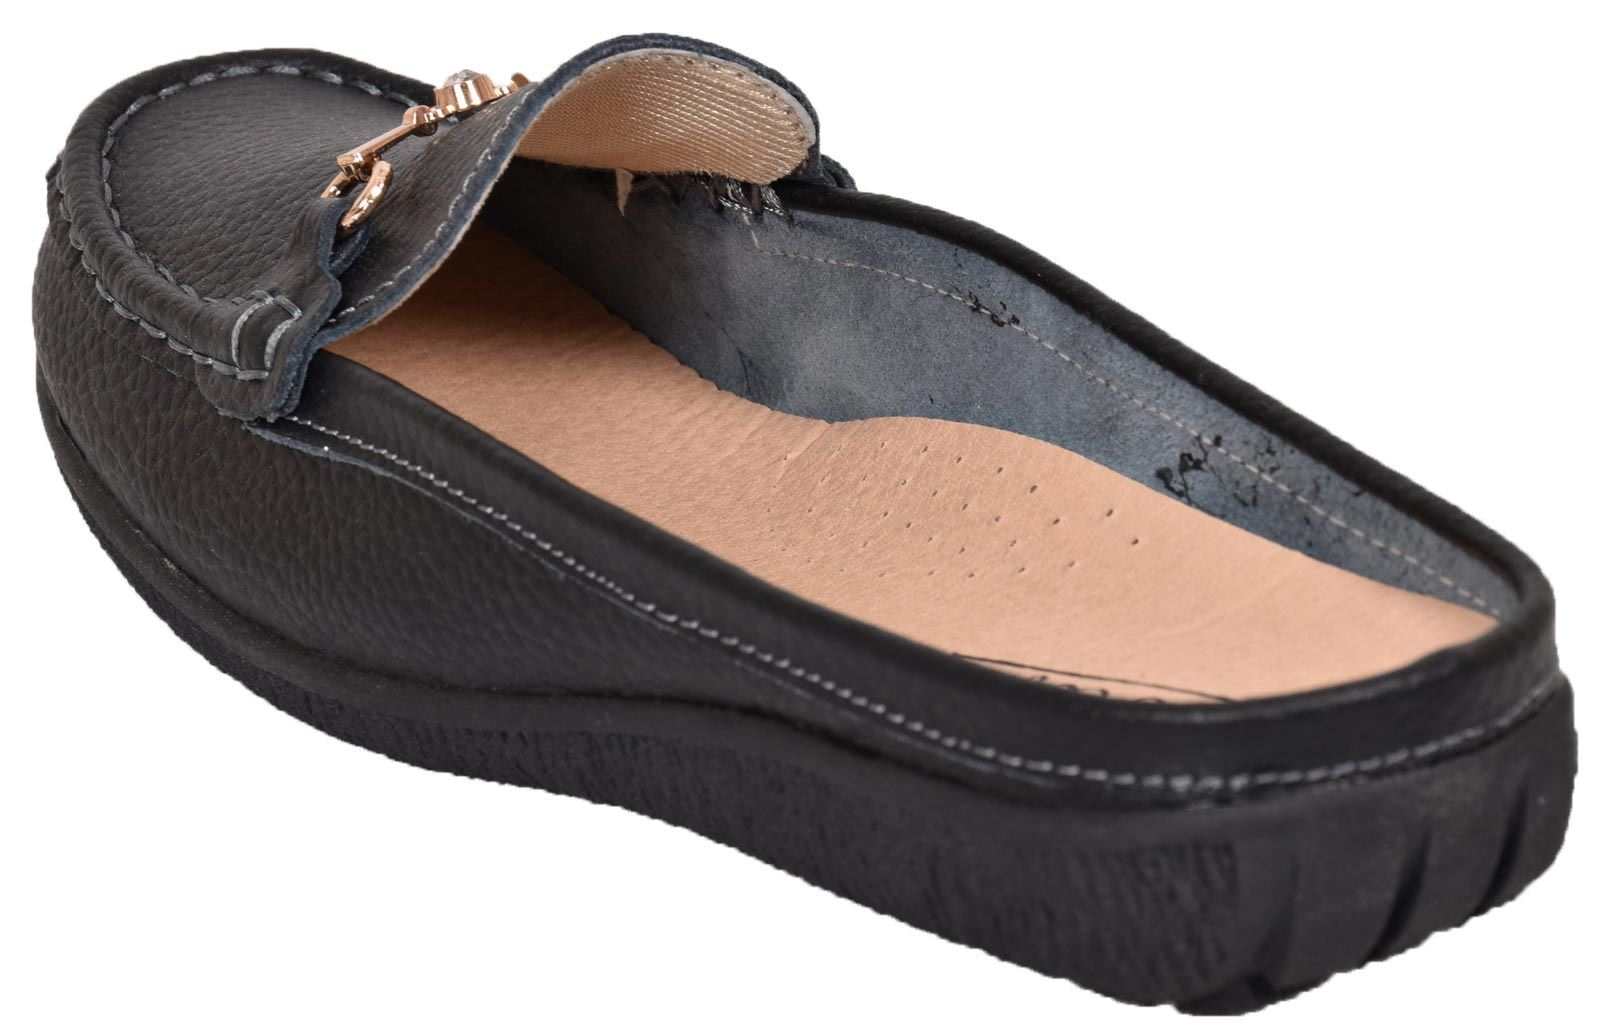 Ladies-Leather-Loafer-Mules-Comfort-Shoes-Womens-Slider-Moccasins-Shoes thumbnail 17